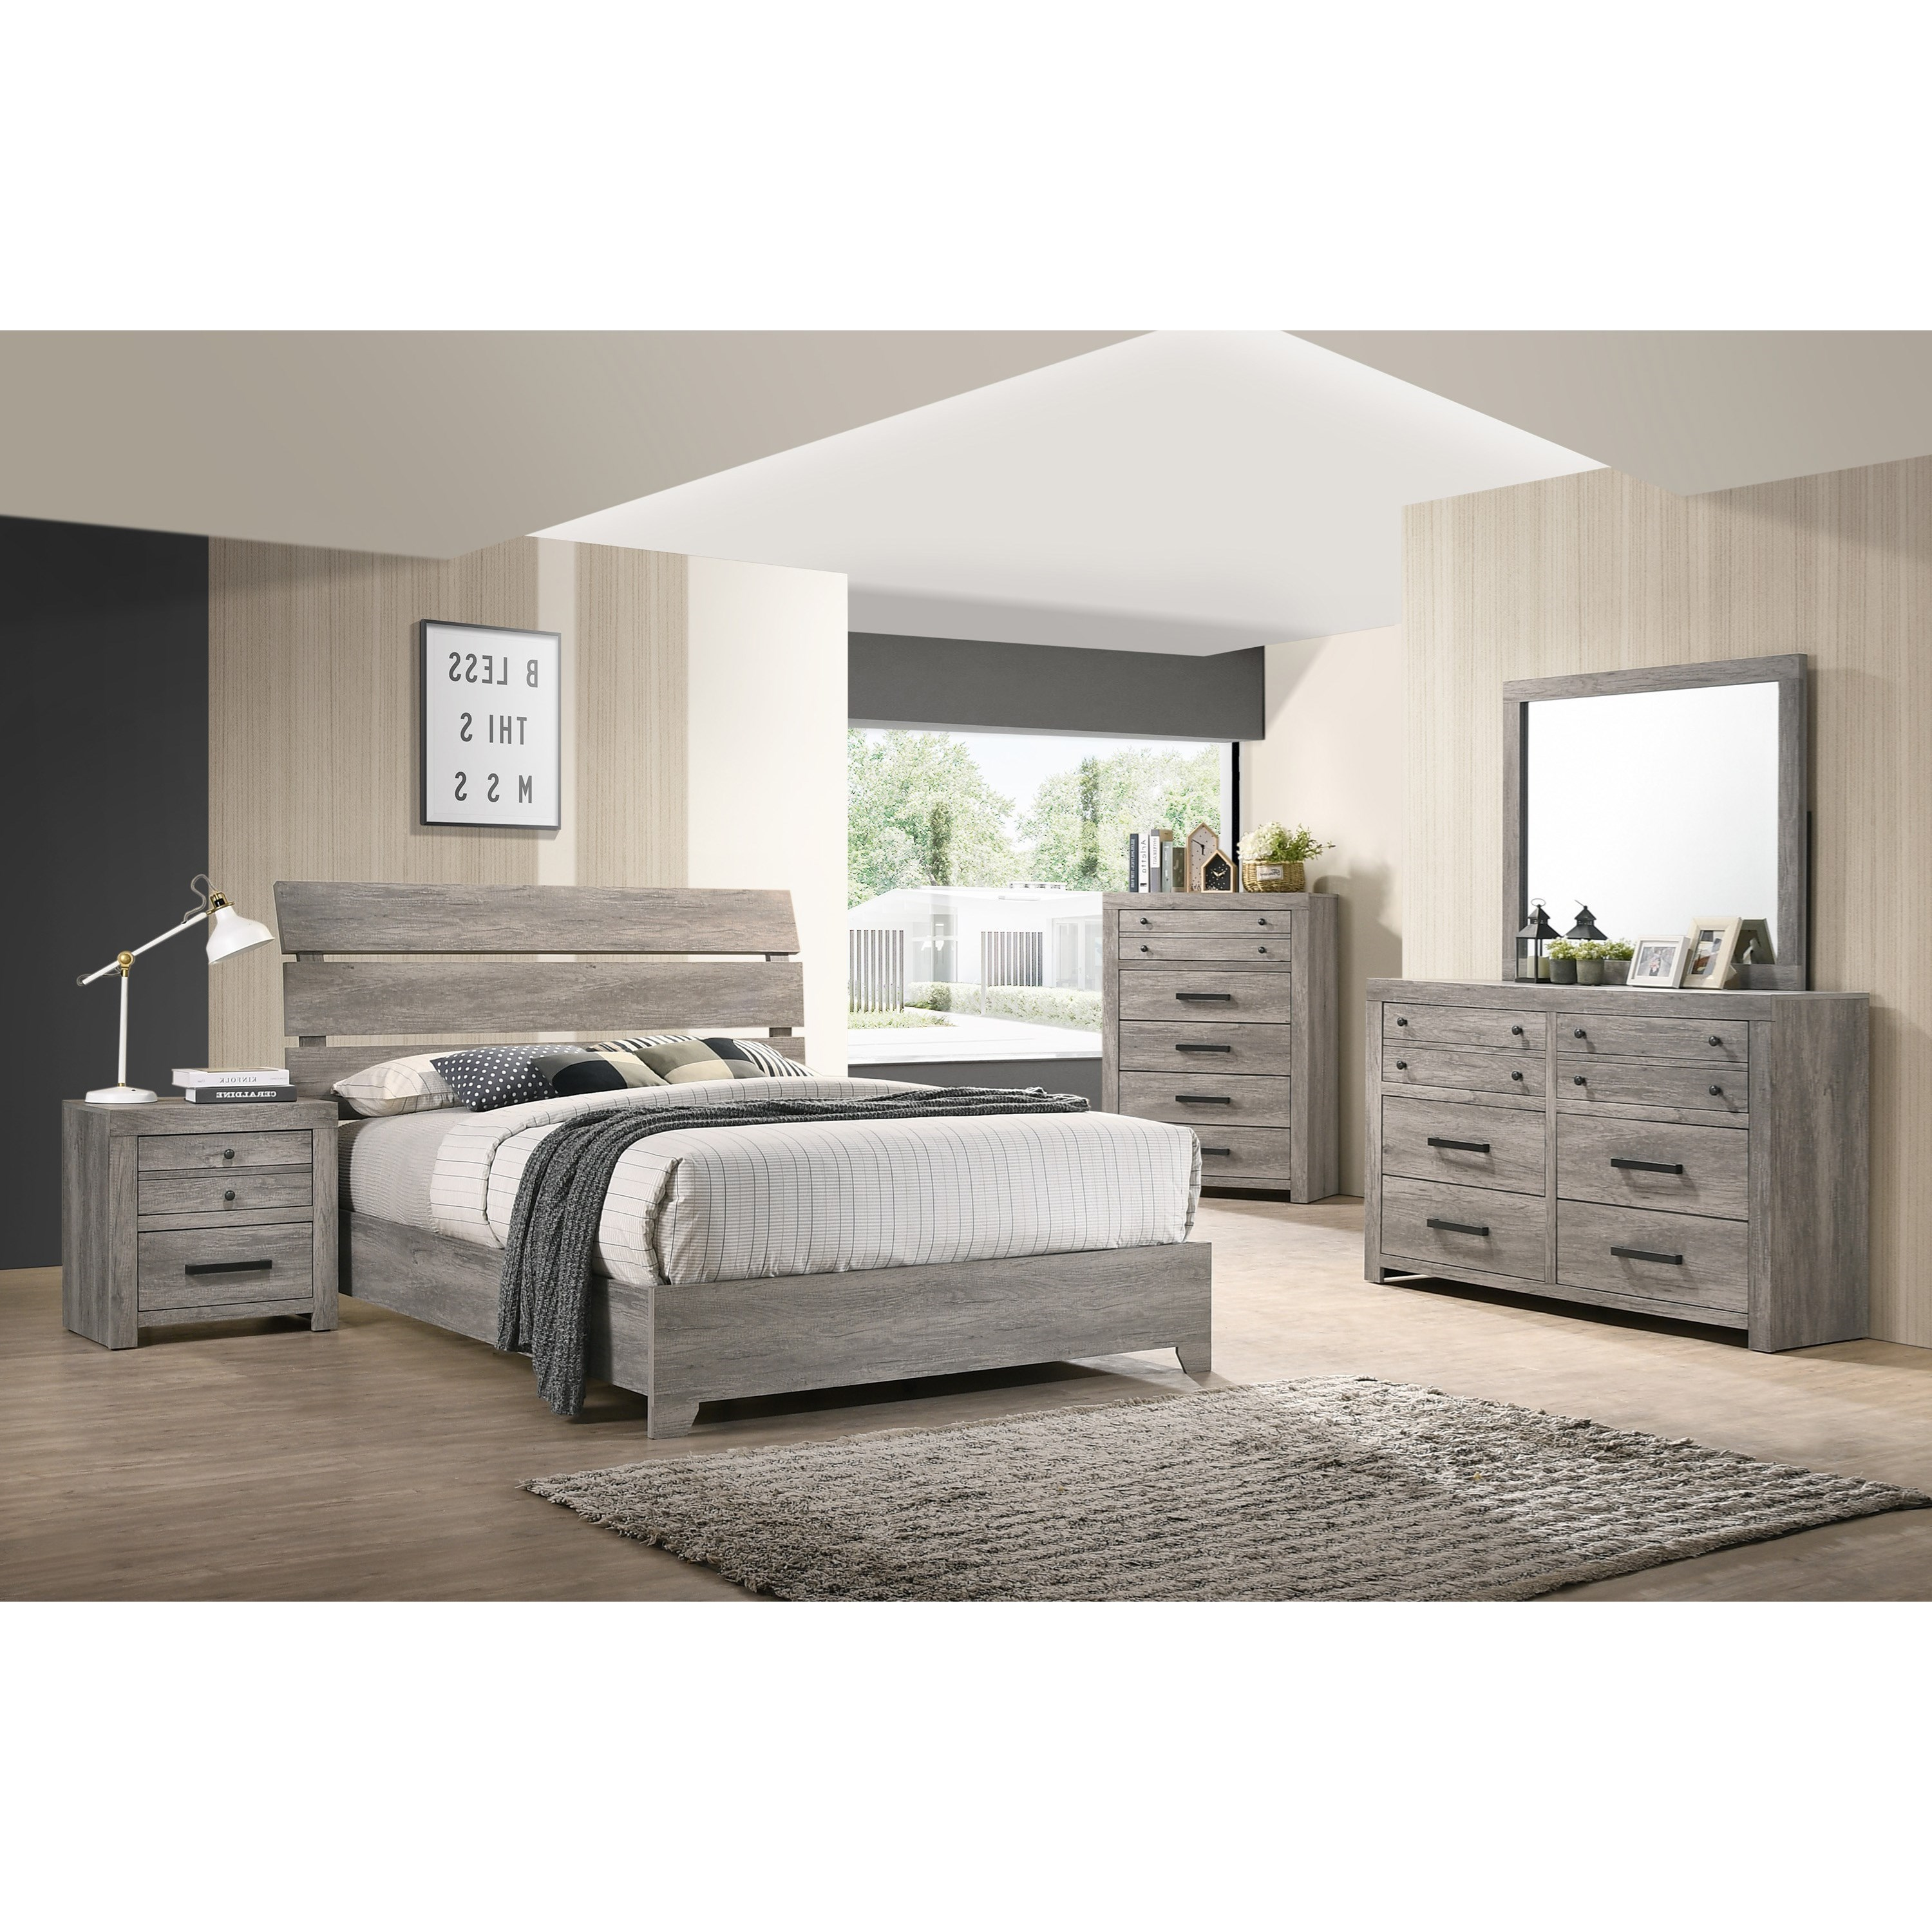 Tundra Queen Bedroom Group by Crown Mark at Northeast Factory Direct